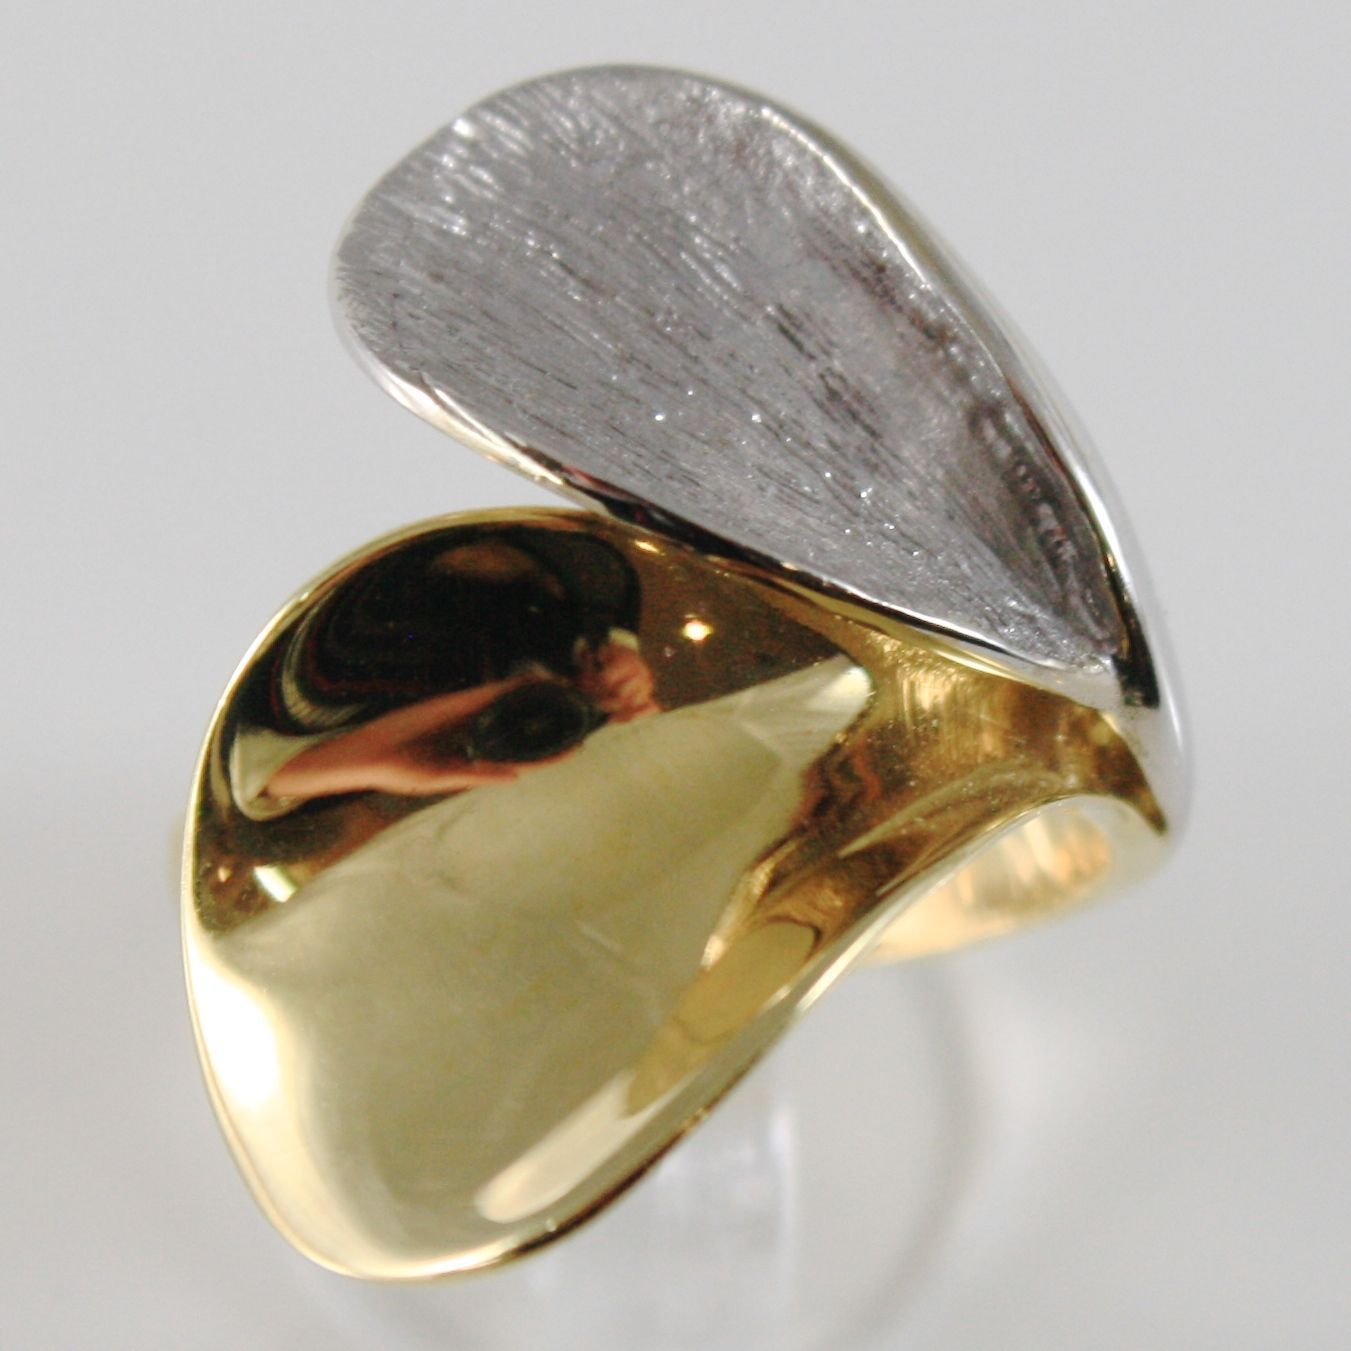 18K YELLOW & WHITE GOLD BAND RING, BIG PETALS LEAVES FINELY WORKED MADE IN ITALY